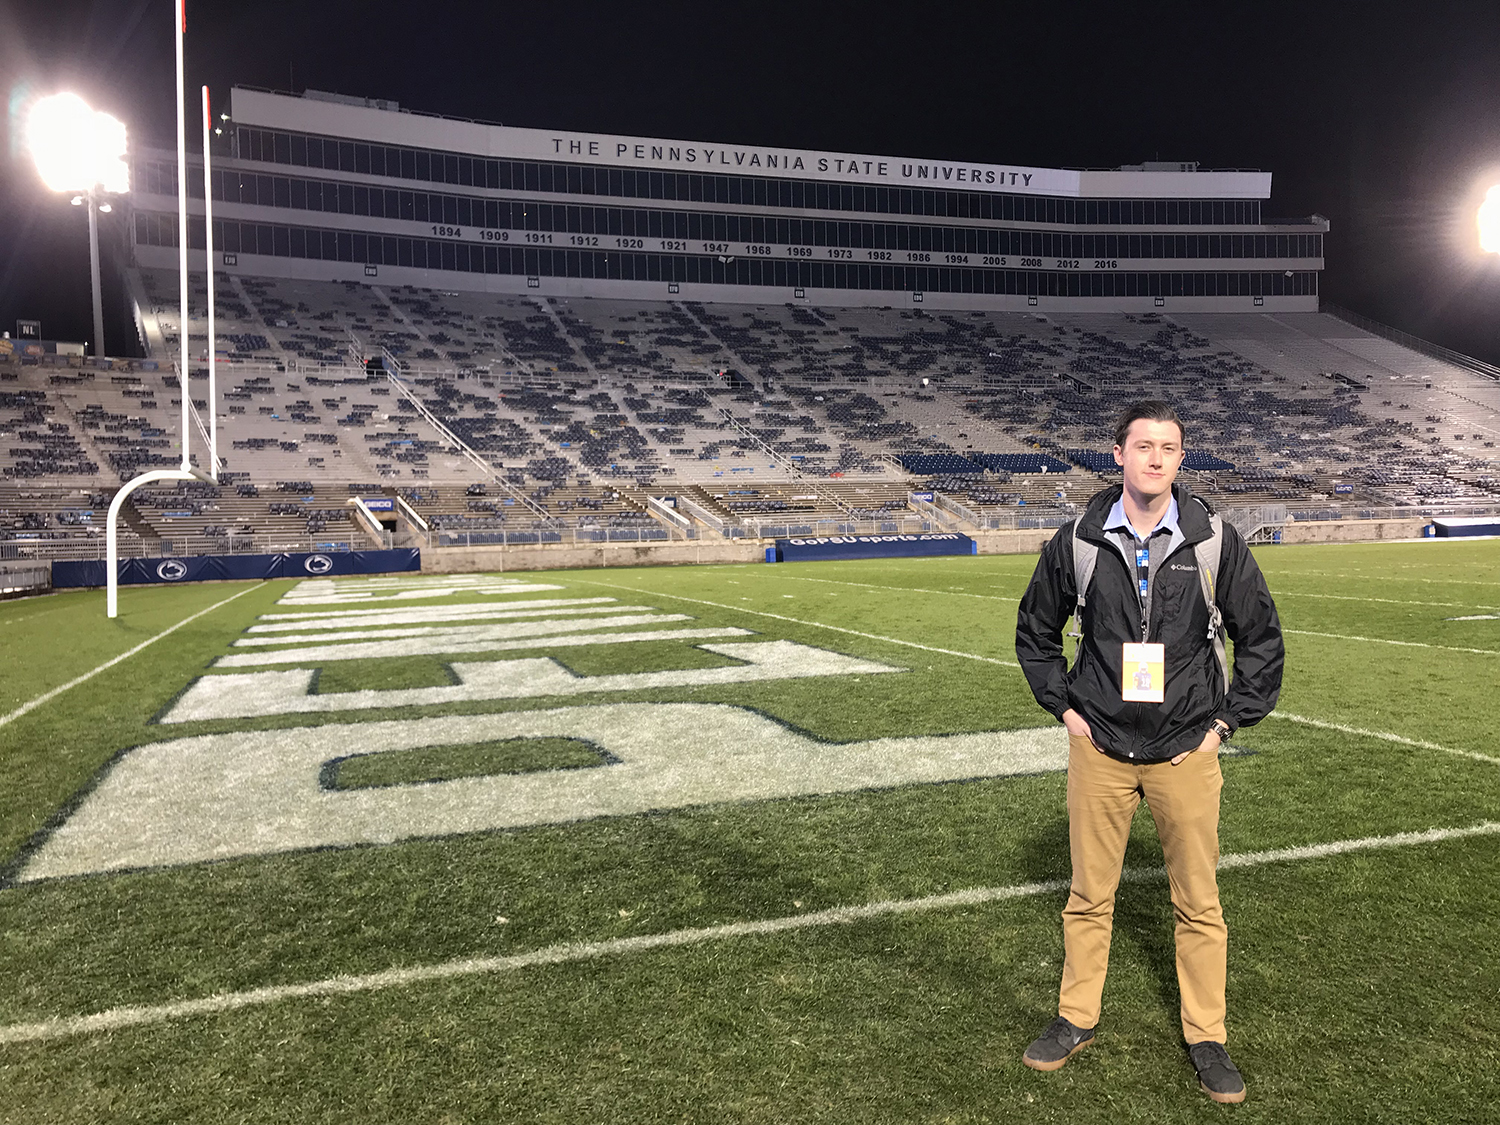 Adam Hensley poses for a portrait in Beaver Stadium in University Park, PA, on Saturday, October 27, 2019. (Nick Rohlman/The Daily Iowan)